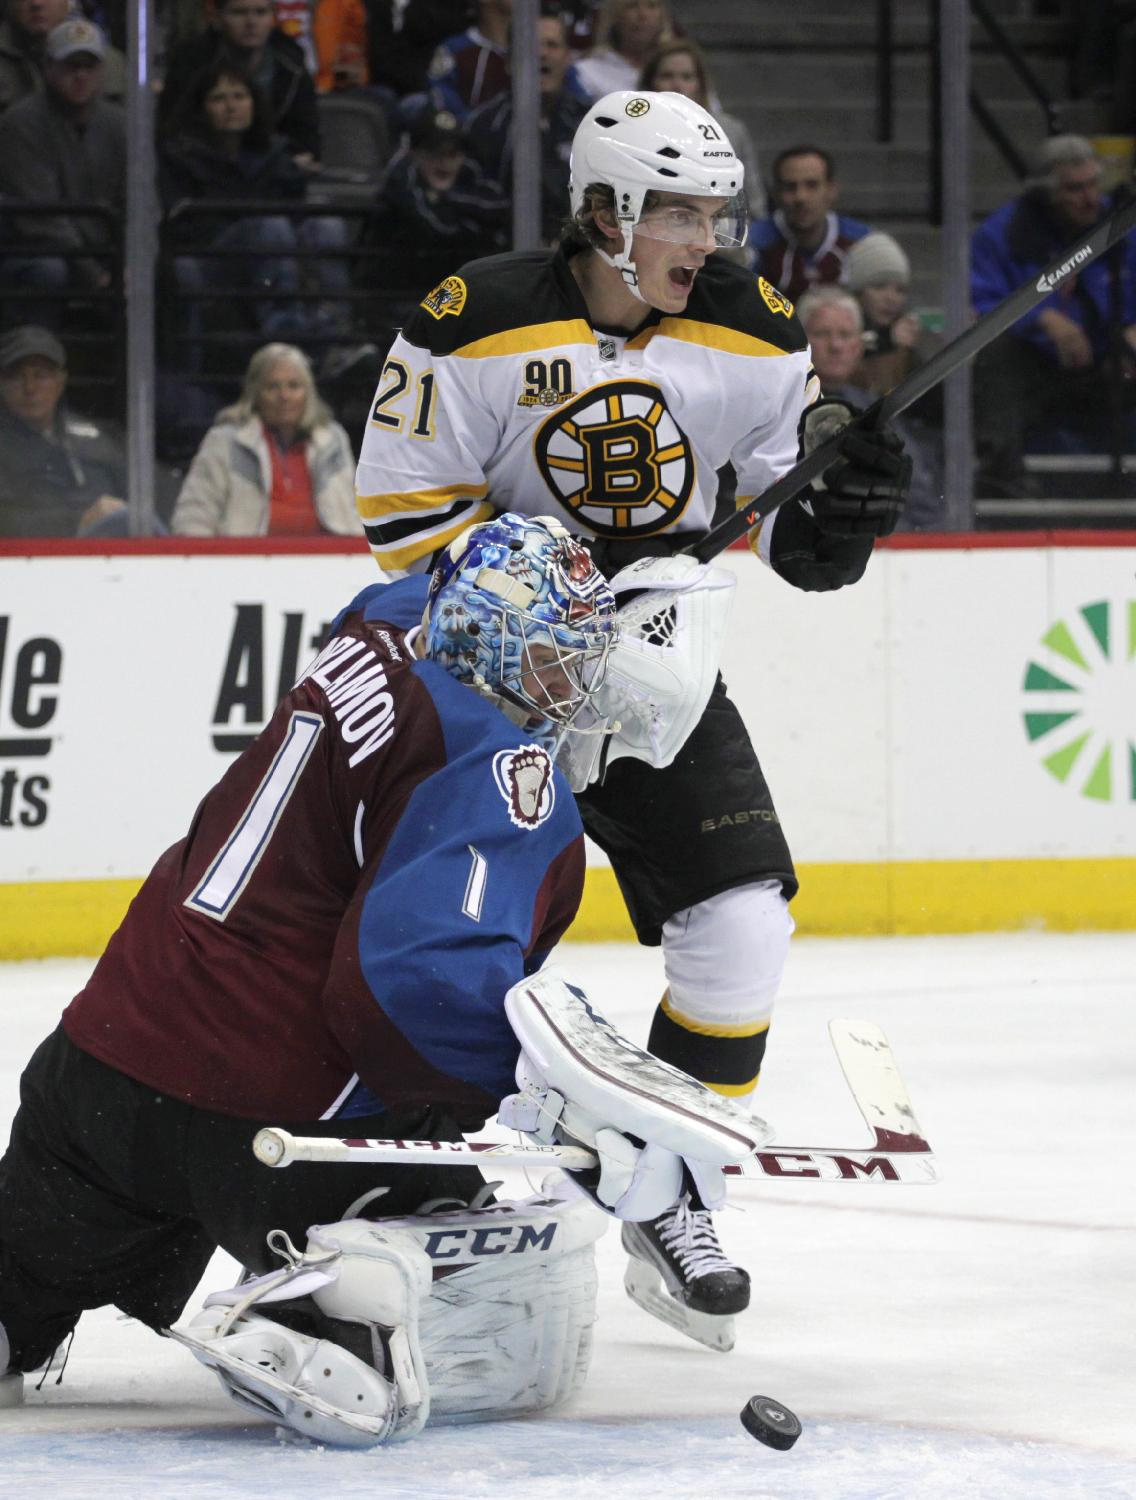 Bruins blank Avalanche for 11th straight win